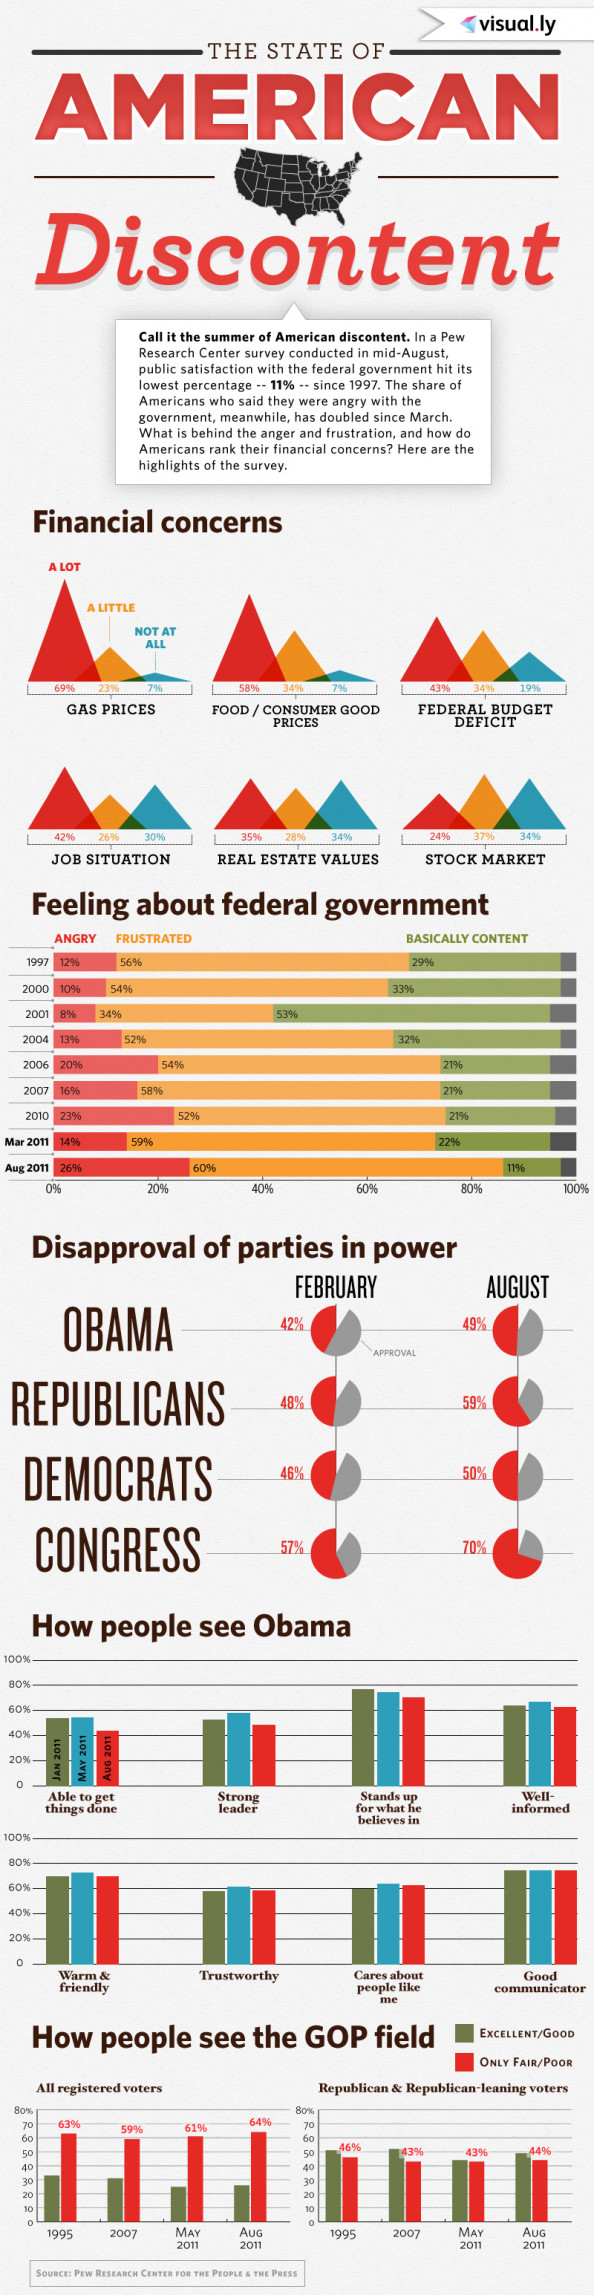 The State of American Discontent Infographic